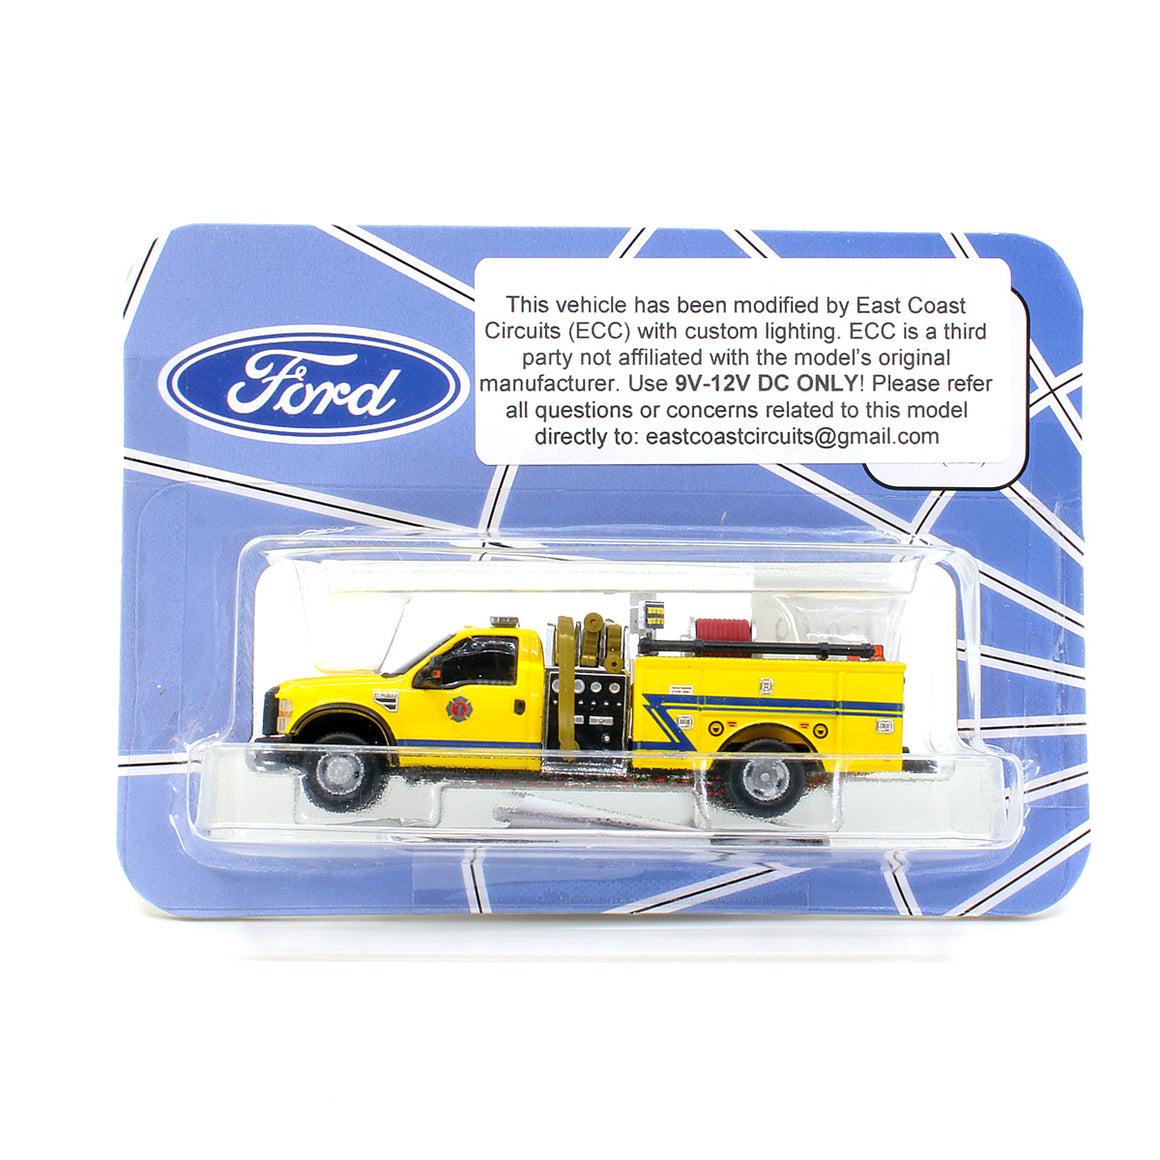 HO Scale: Lighted Ford F-550 - Mini Pumper Fire Truck - Yellow w/ Blue Z Stripe